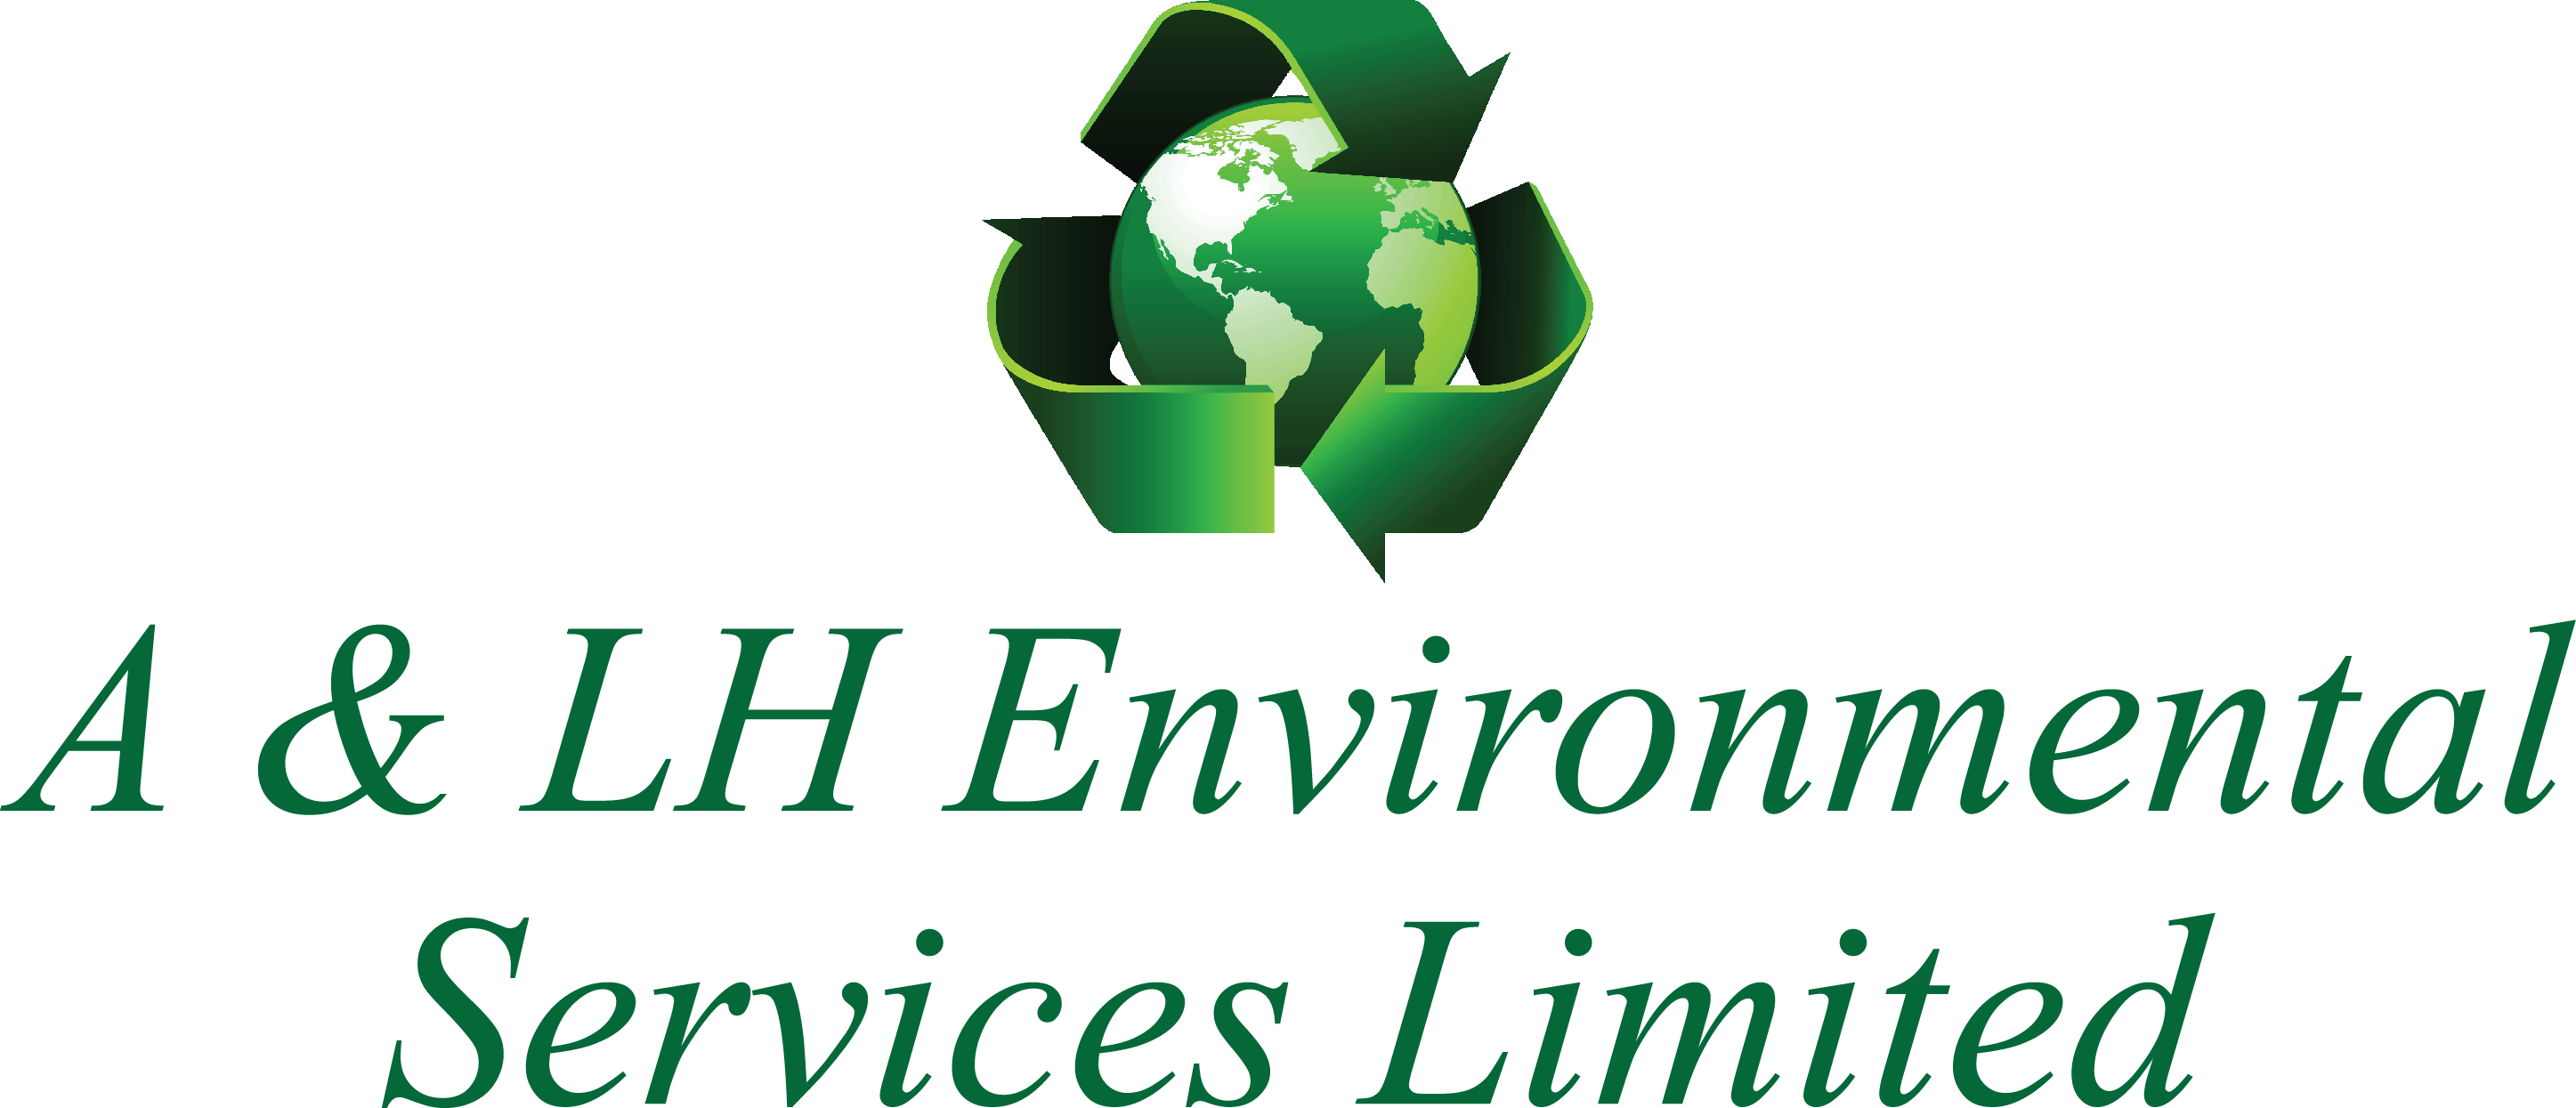 A & L H Environmental Services Ltd